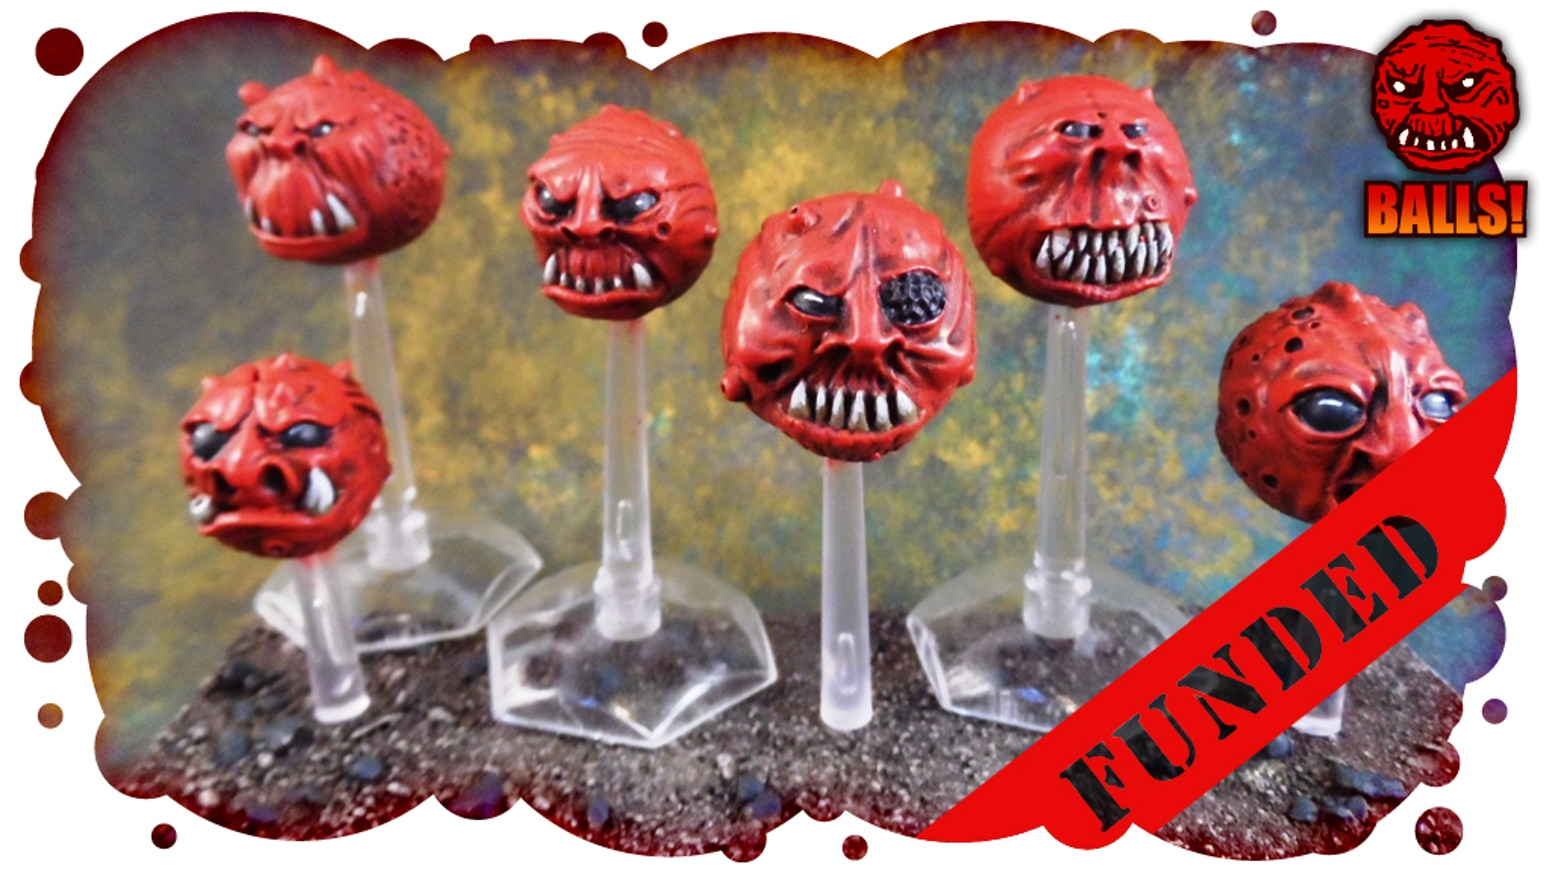 Now available to pre order for shipping late July after the backers.http://www.macrocosm.co.uk/product-category/ball-monsters/